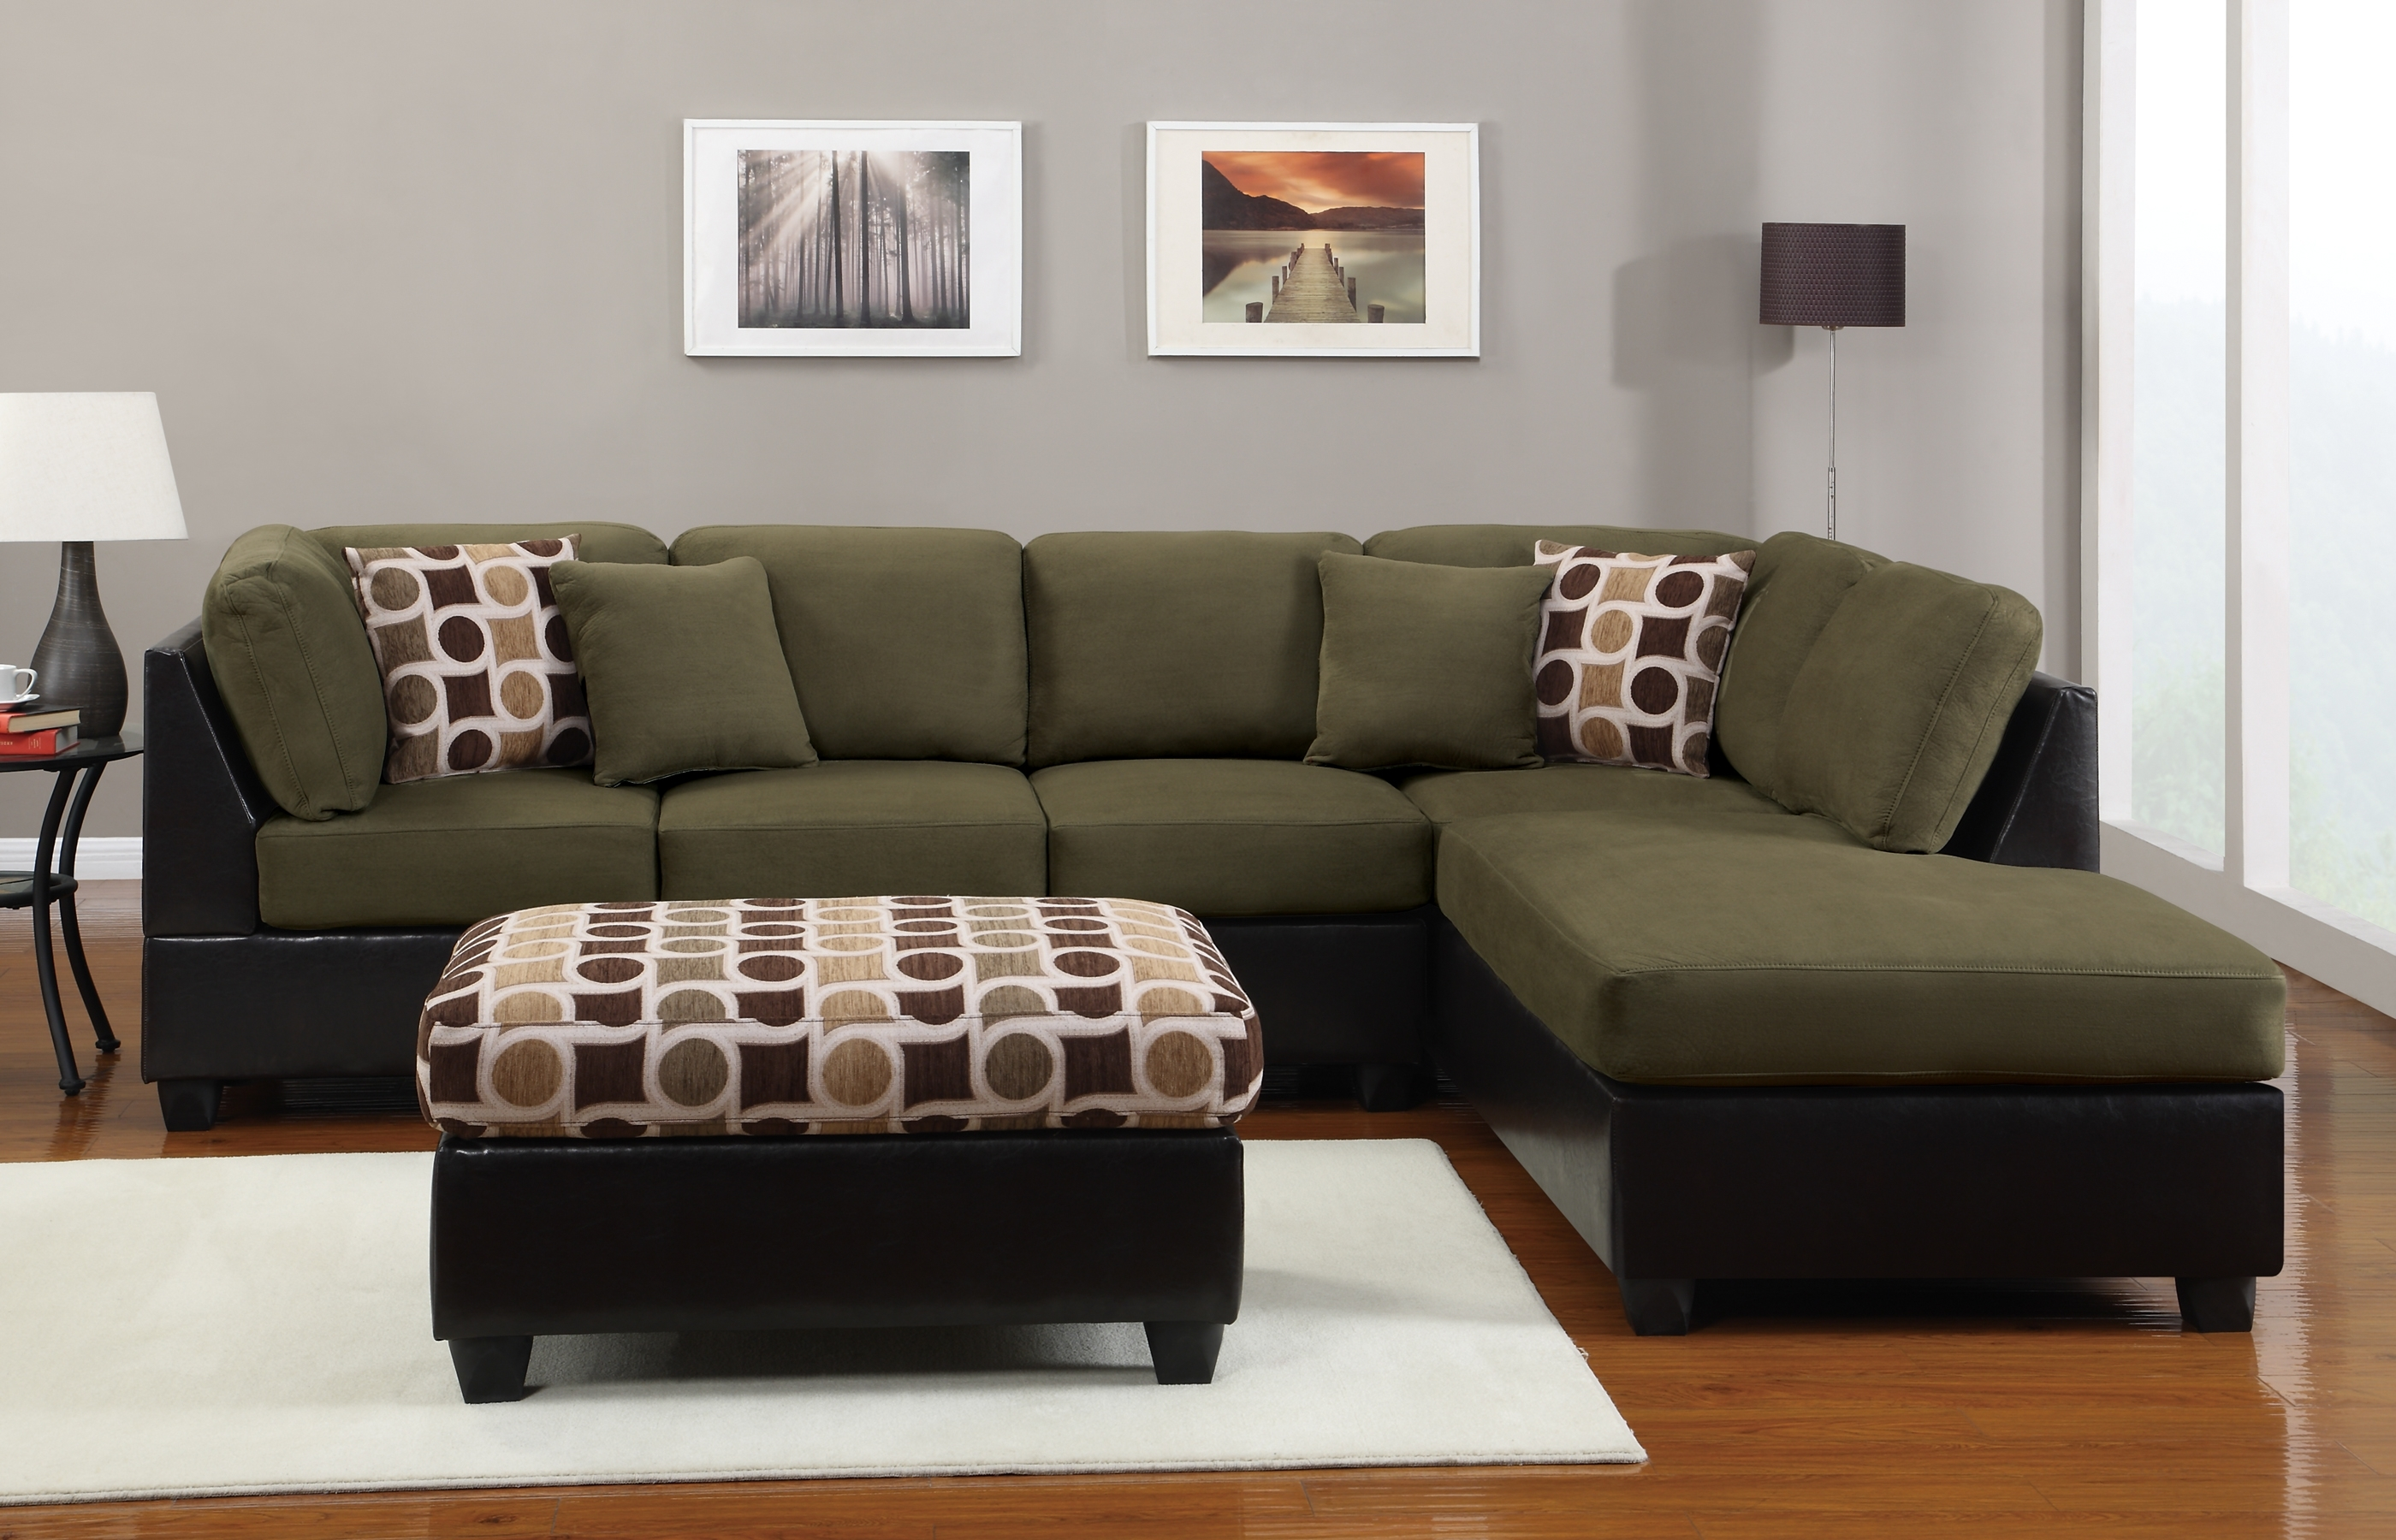 Well Known Green Sectional Sofas With Chaise For Espresso Leather Sectional Sofa With Right Chaise Lounge Using (View 9 of 20)